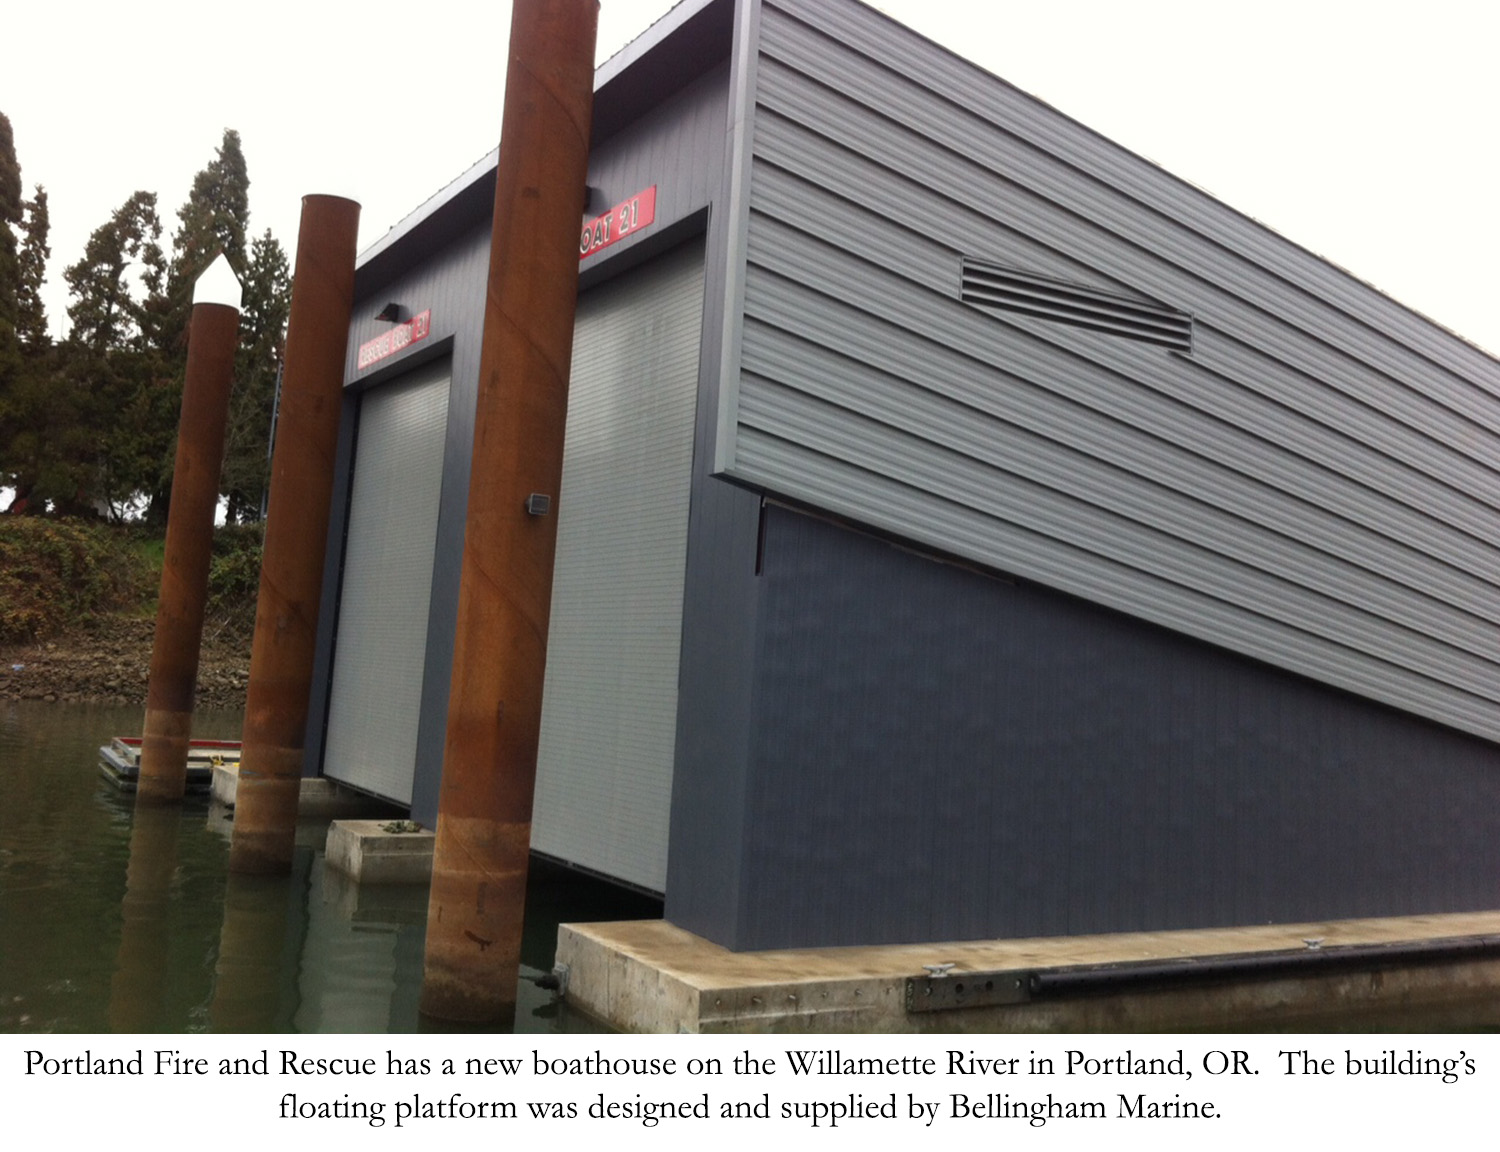 Portland Fire and Rescue Boathouse